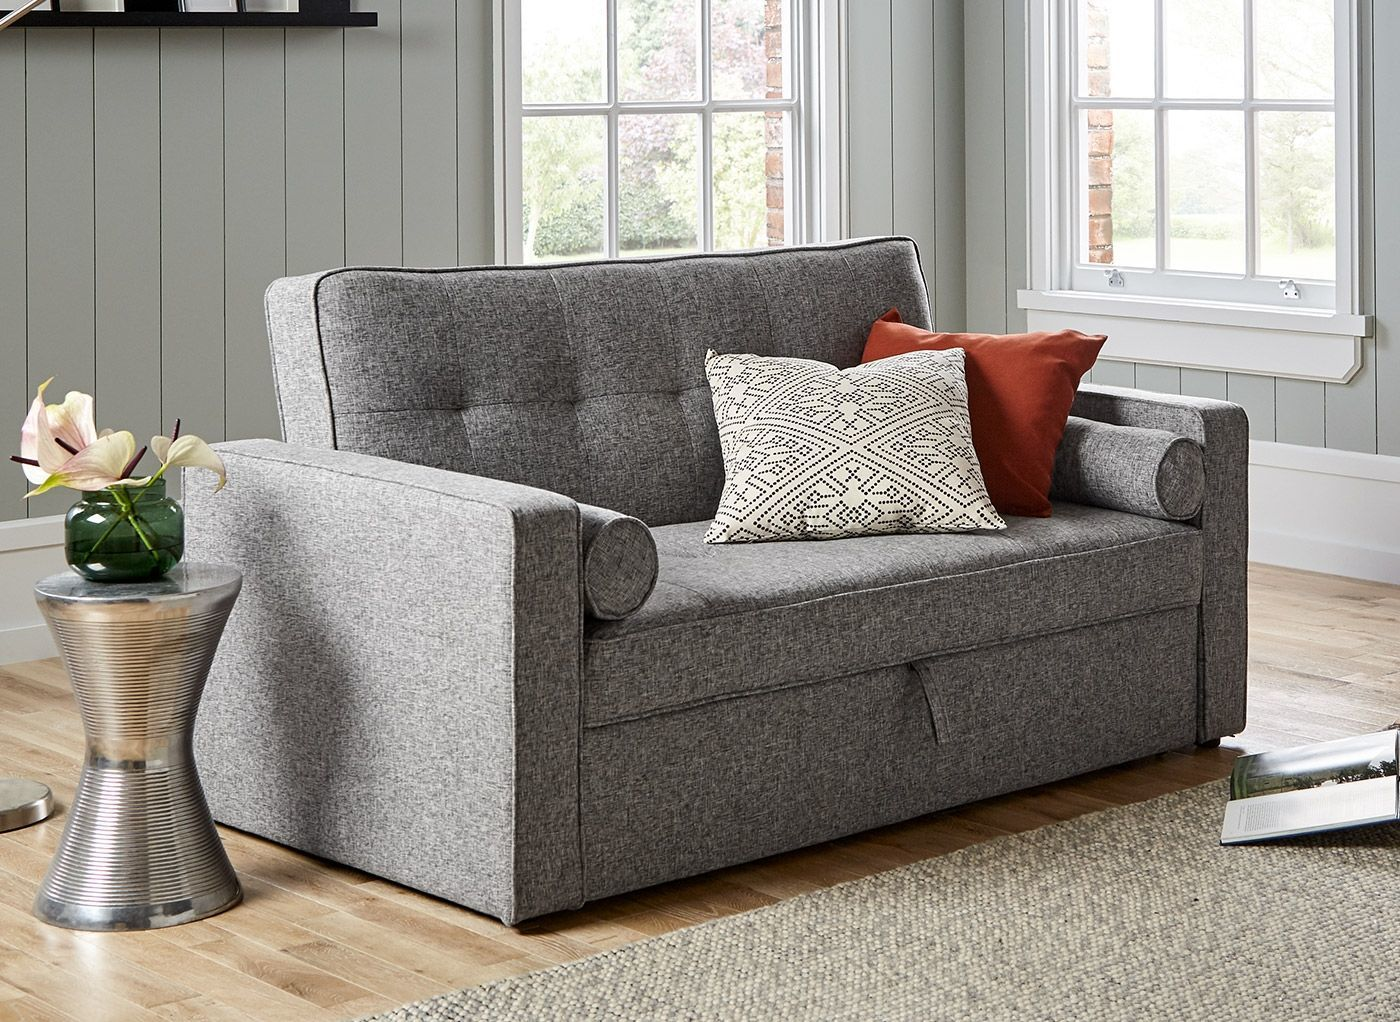 stylish cb2 sofa bed plan-Sensational Cb2 sofa Bed Model